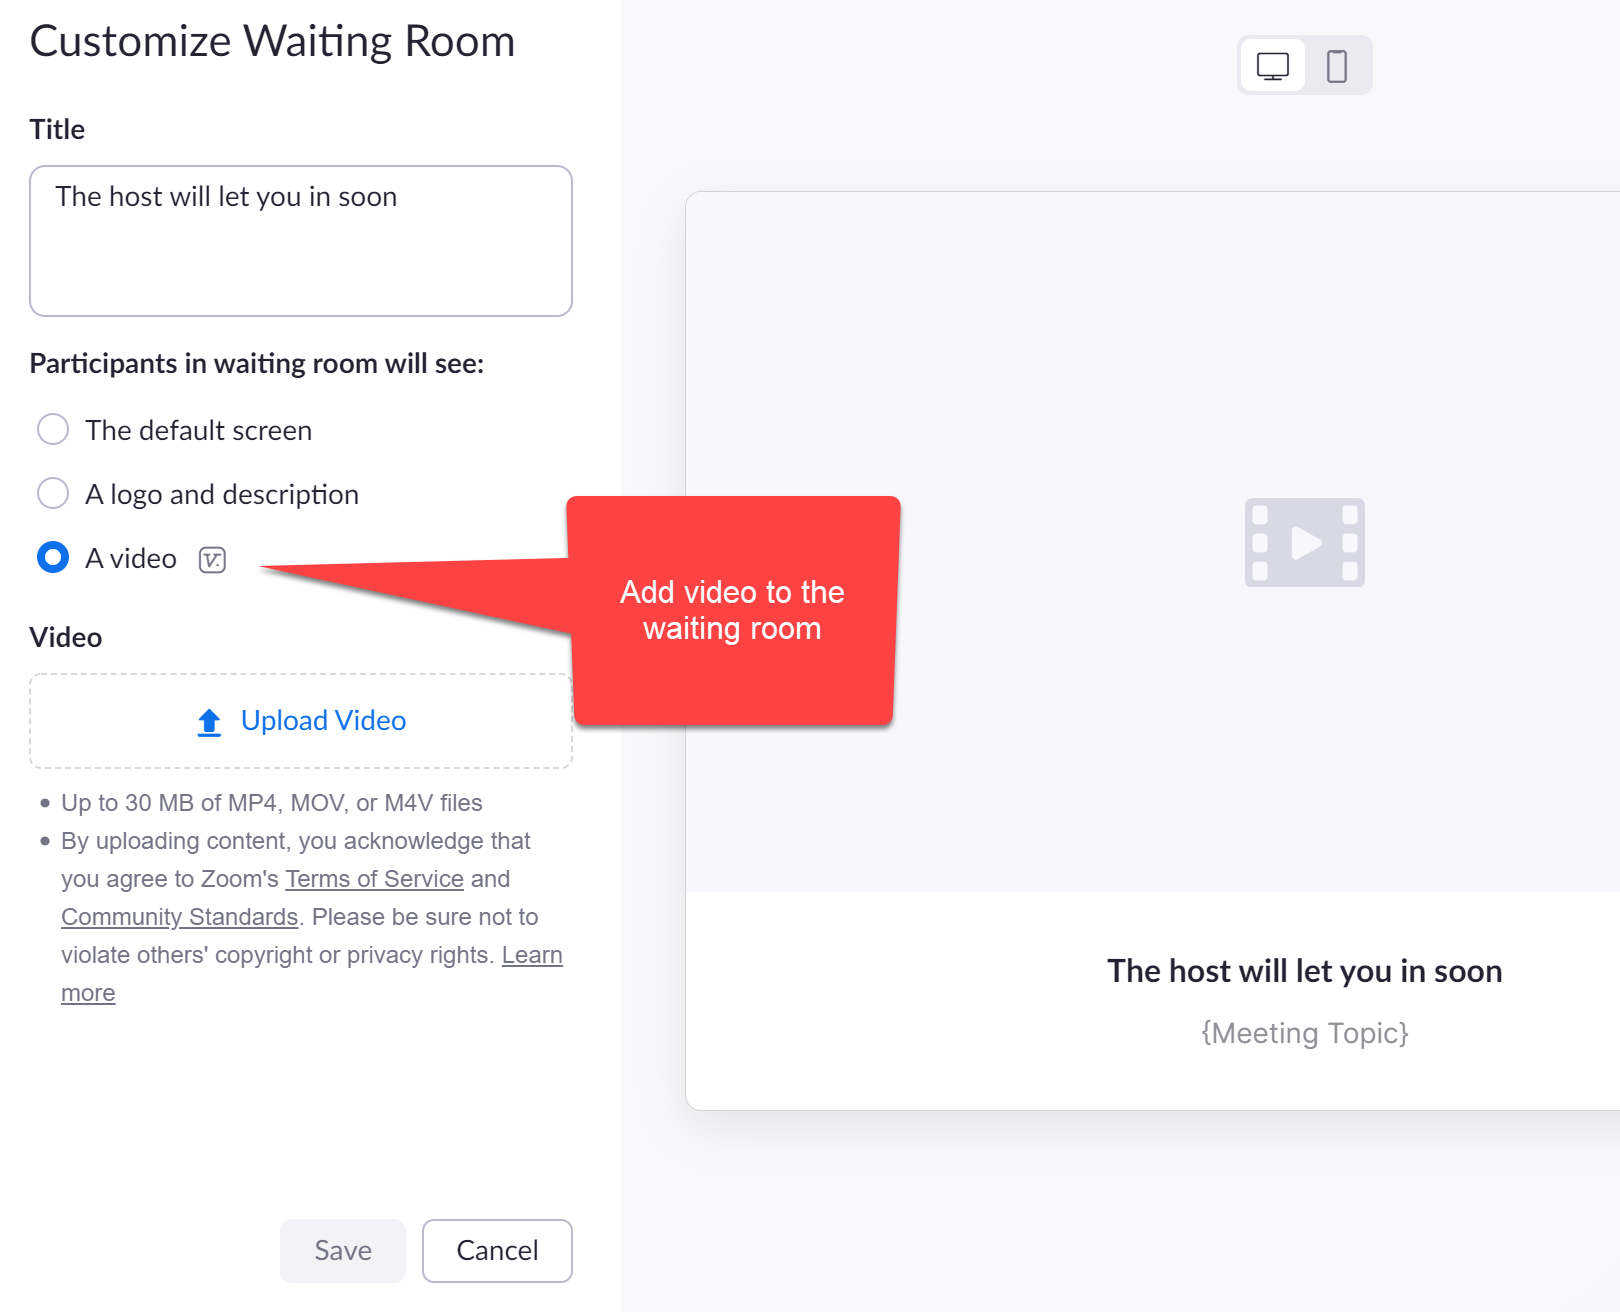 Add video to the Zoom waiting room